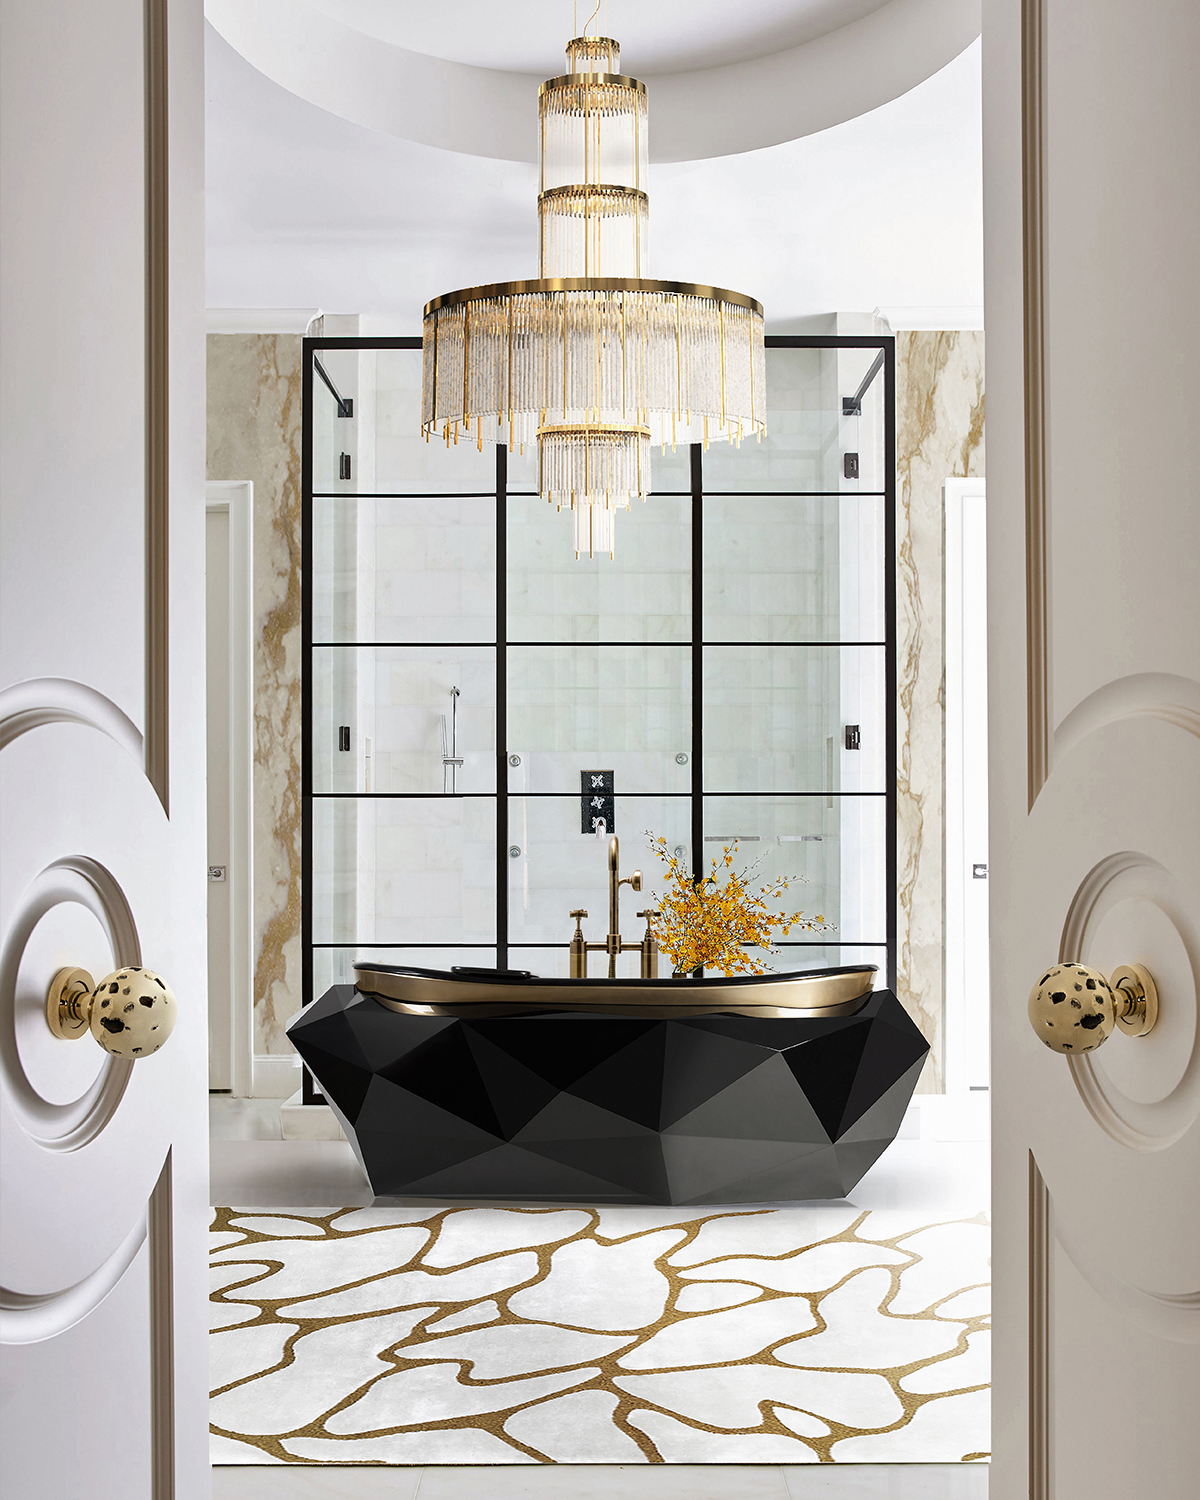 bathroom, golden bathroom, gold,maison valentina, bathub, mirror, rug, tap, bathroom decoration, bathroom decor bathroom 5 Ideas to Add a Touch of Gold to Your Bathroom 5 ideas to add a touch of gold to your bathroom 5